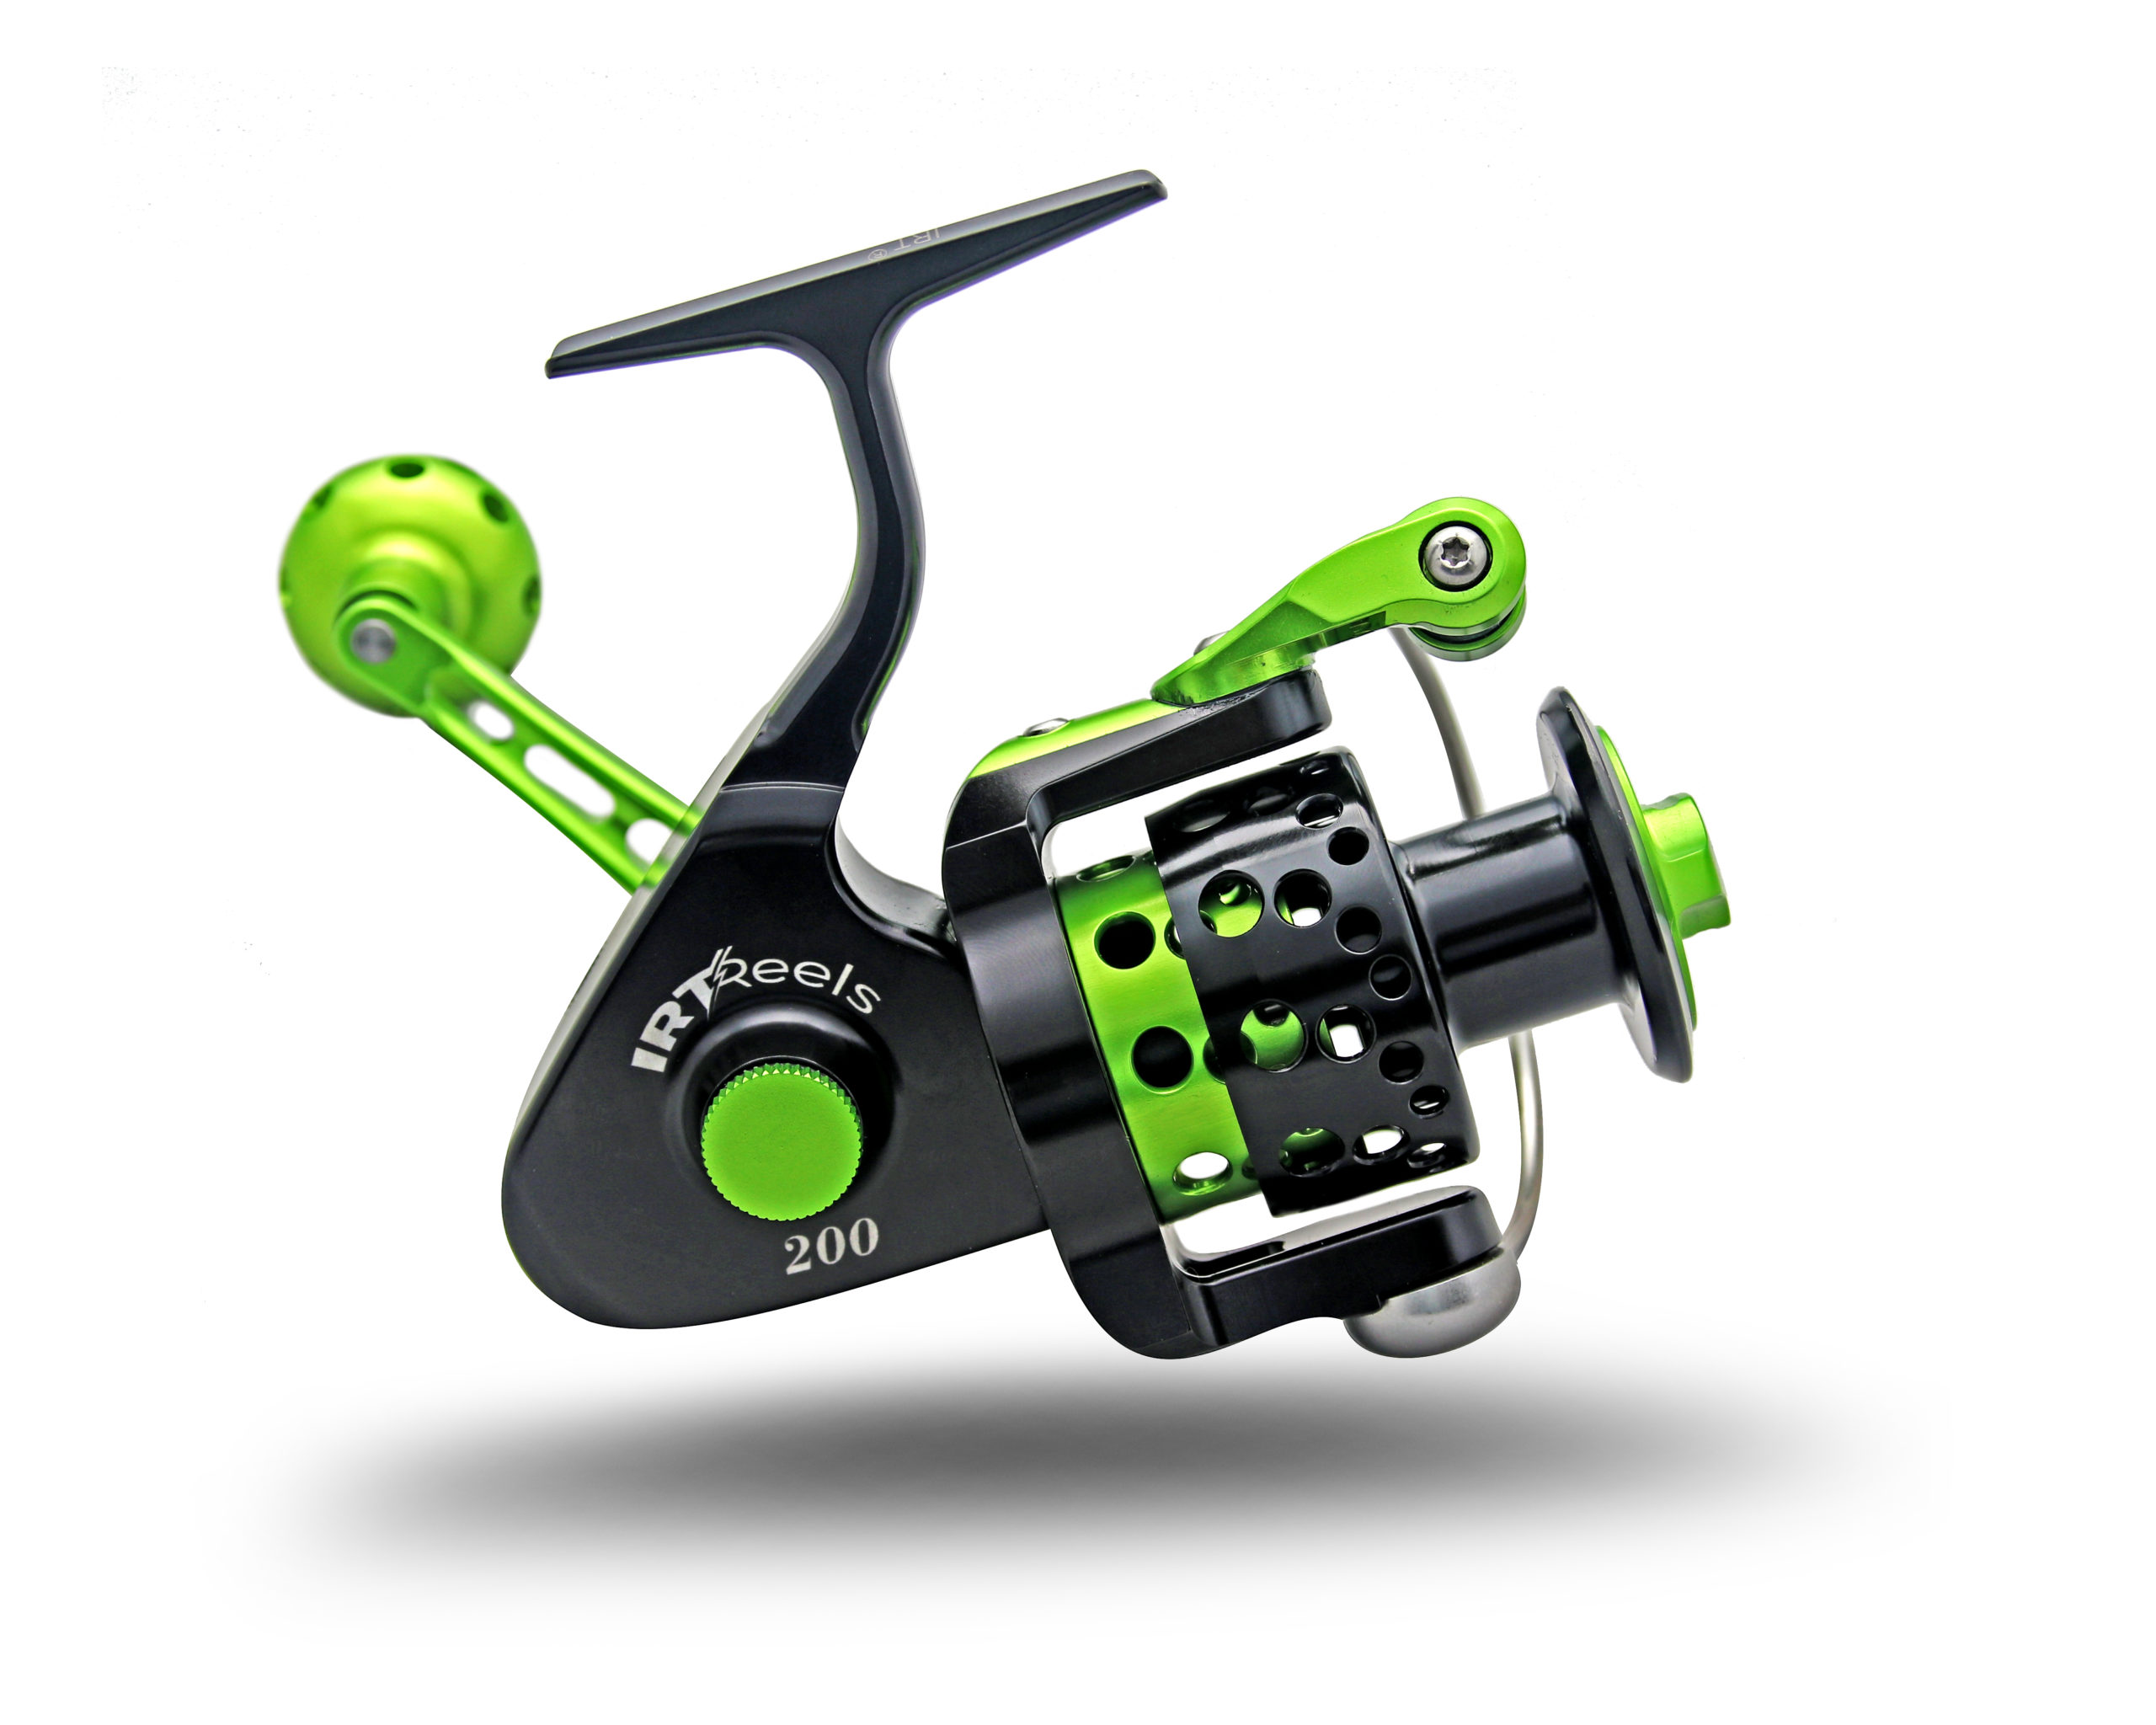 IRT200 Black and Green Spinning Reel